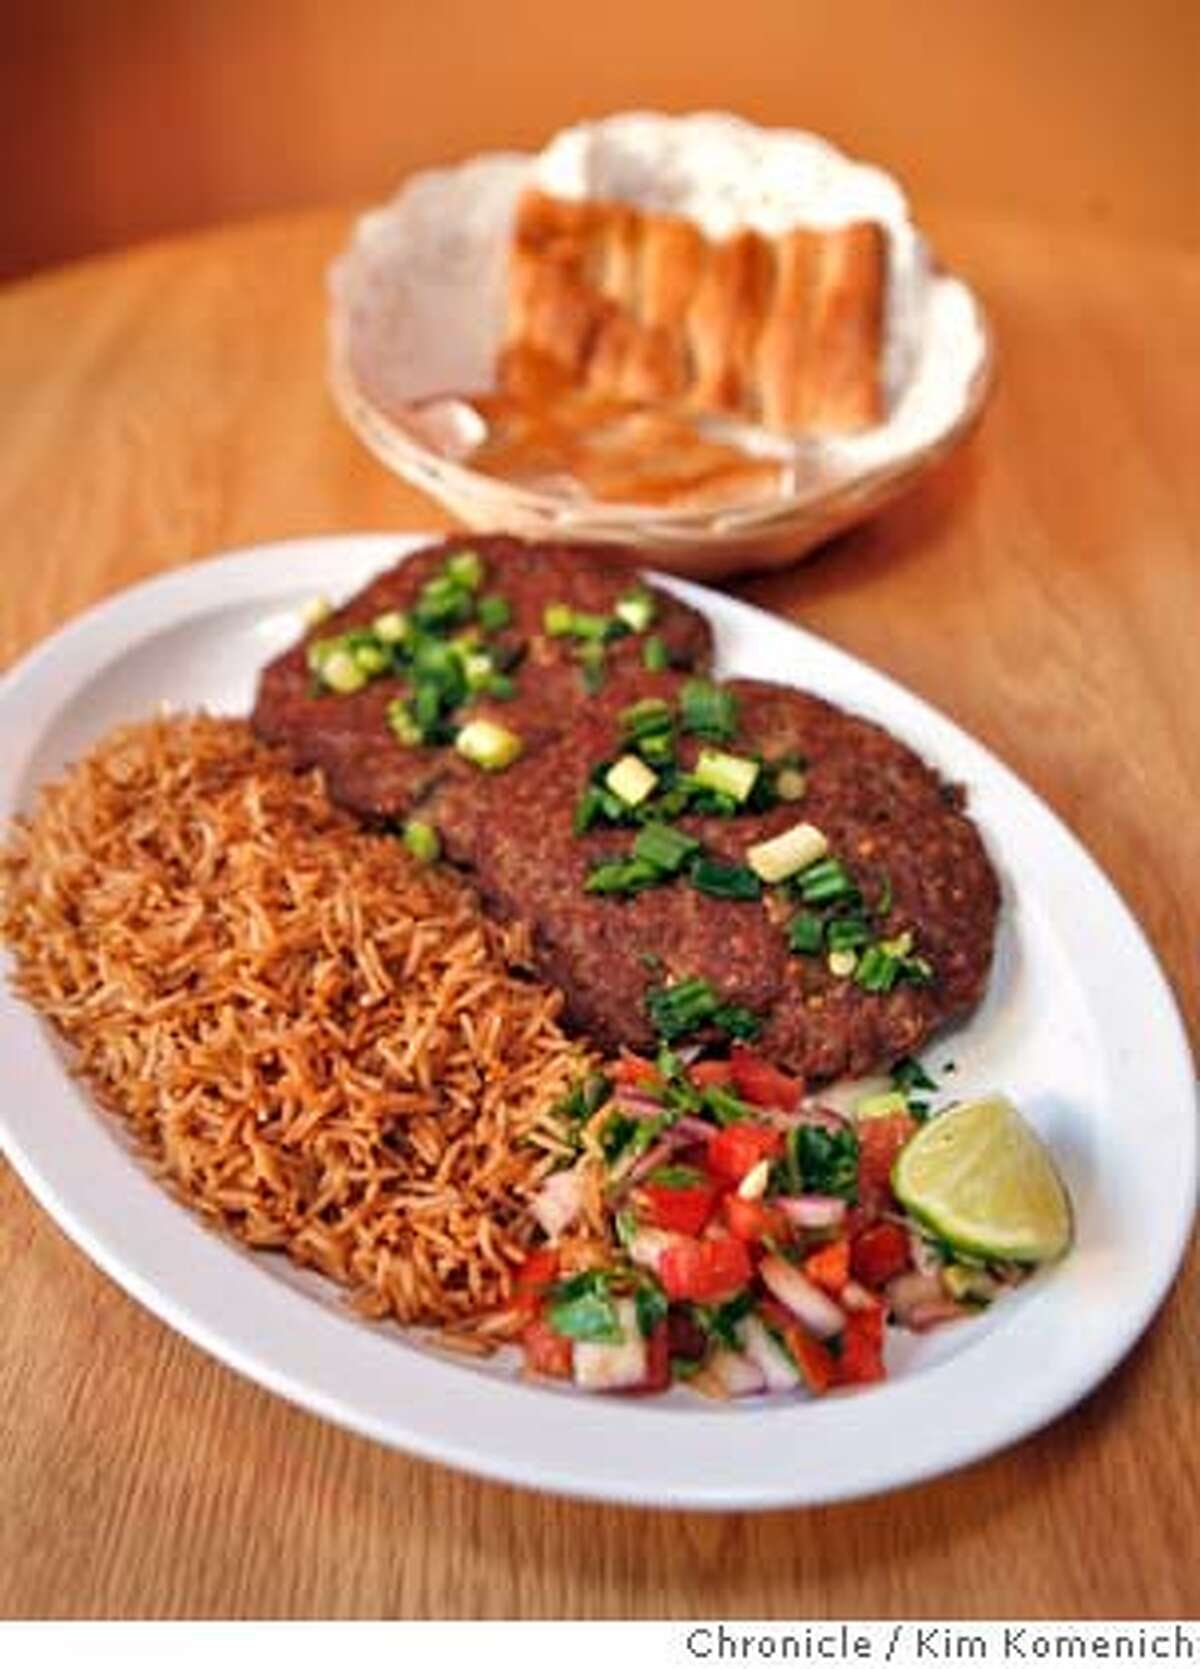 BARGAIN13_DEAFGHANAN_012_KK.JPG De Afghanan Kebob House on Polk in San Francisco is an offshoot of a couple of the popular Afghan restaurants in Fremont. Dishes include Chapli Kabob -- two beef patties with green onions. Photo by Kim Komenich/The Chronicle **